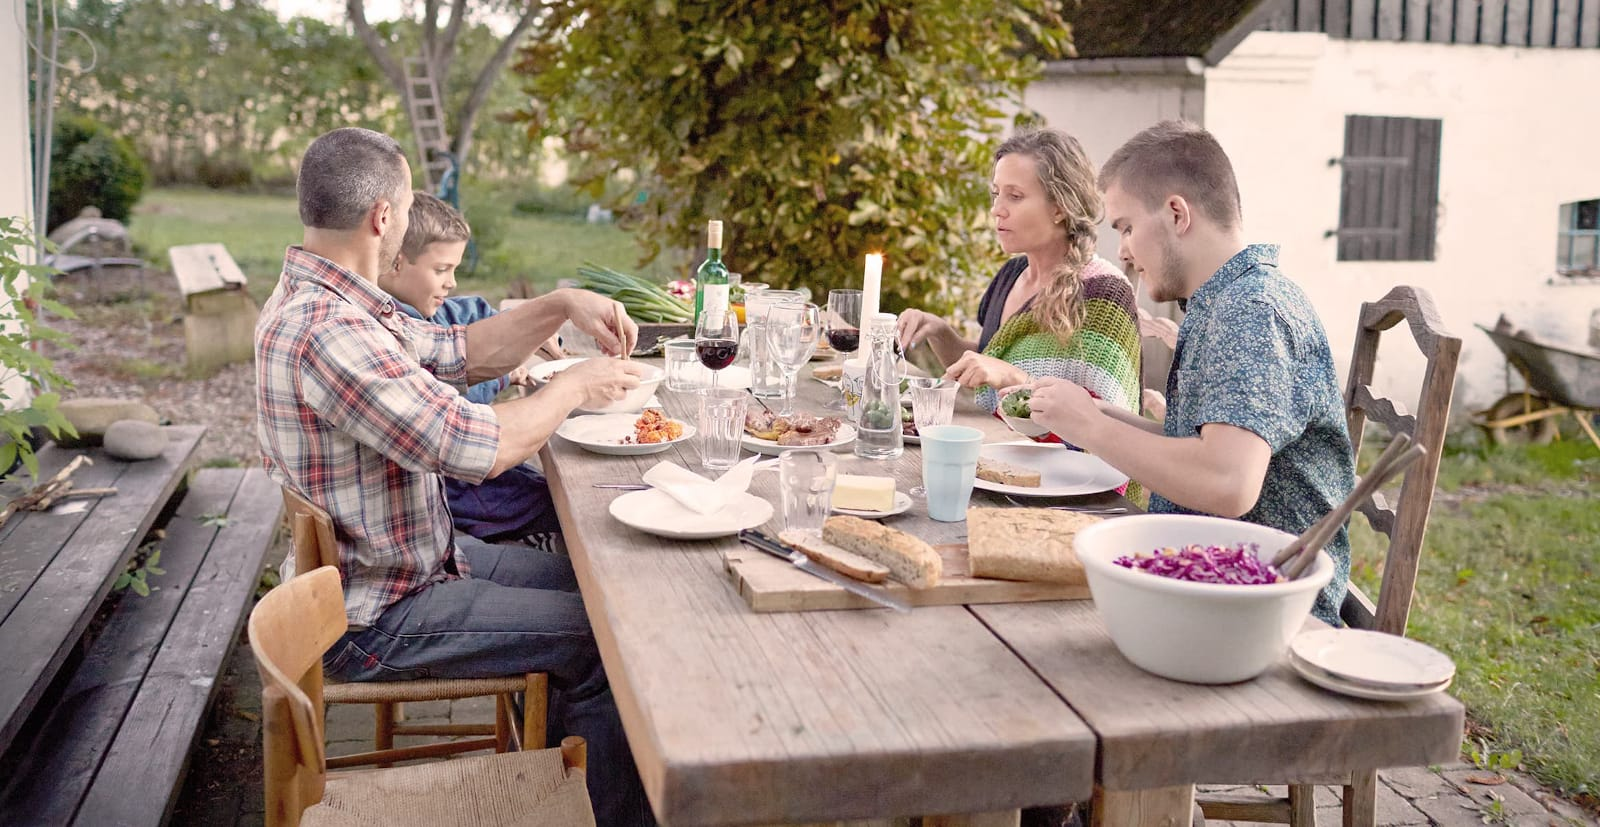 A family sits and eats at a large table in the garden in front of a house.